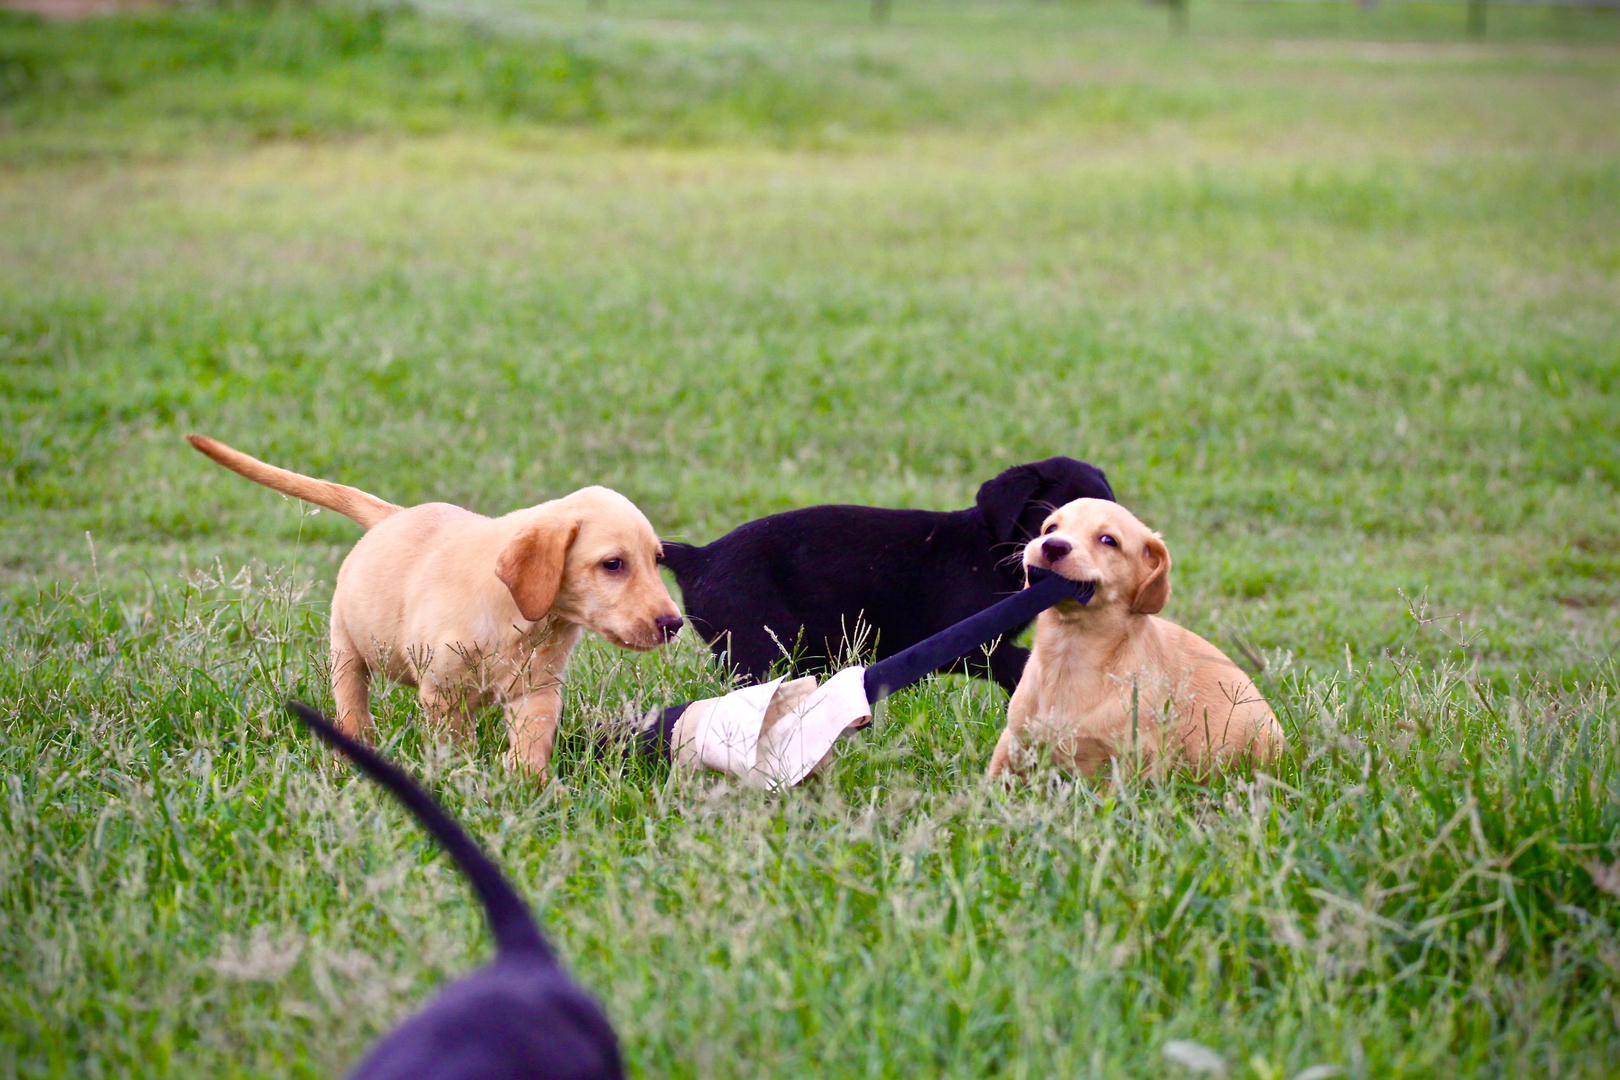 Texas Labrador Puppies for sale, Yellow, Black, Chocolate puppy